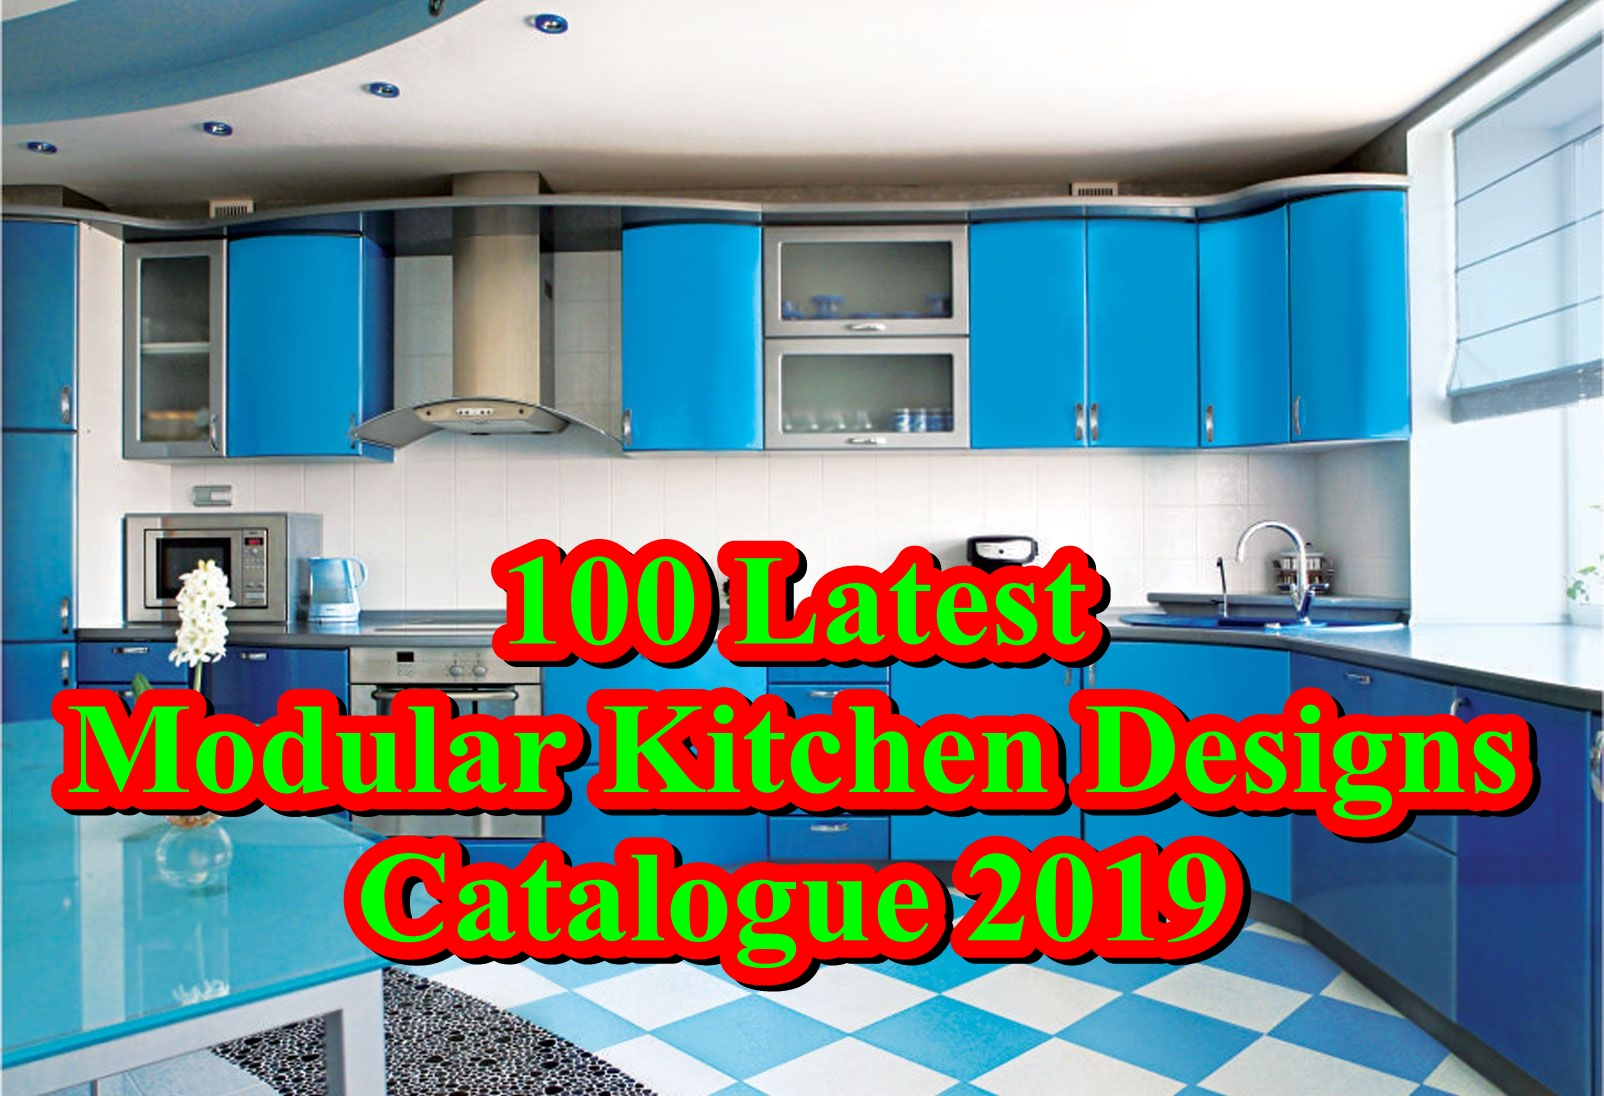 Must See 100 Latest Modular Kitchen Designs Catalogue 2019